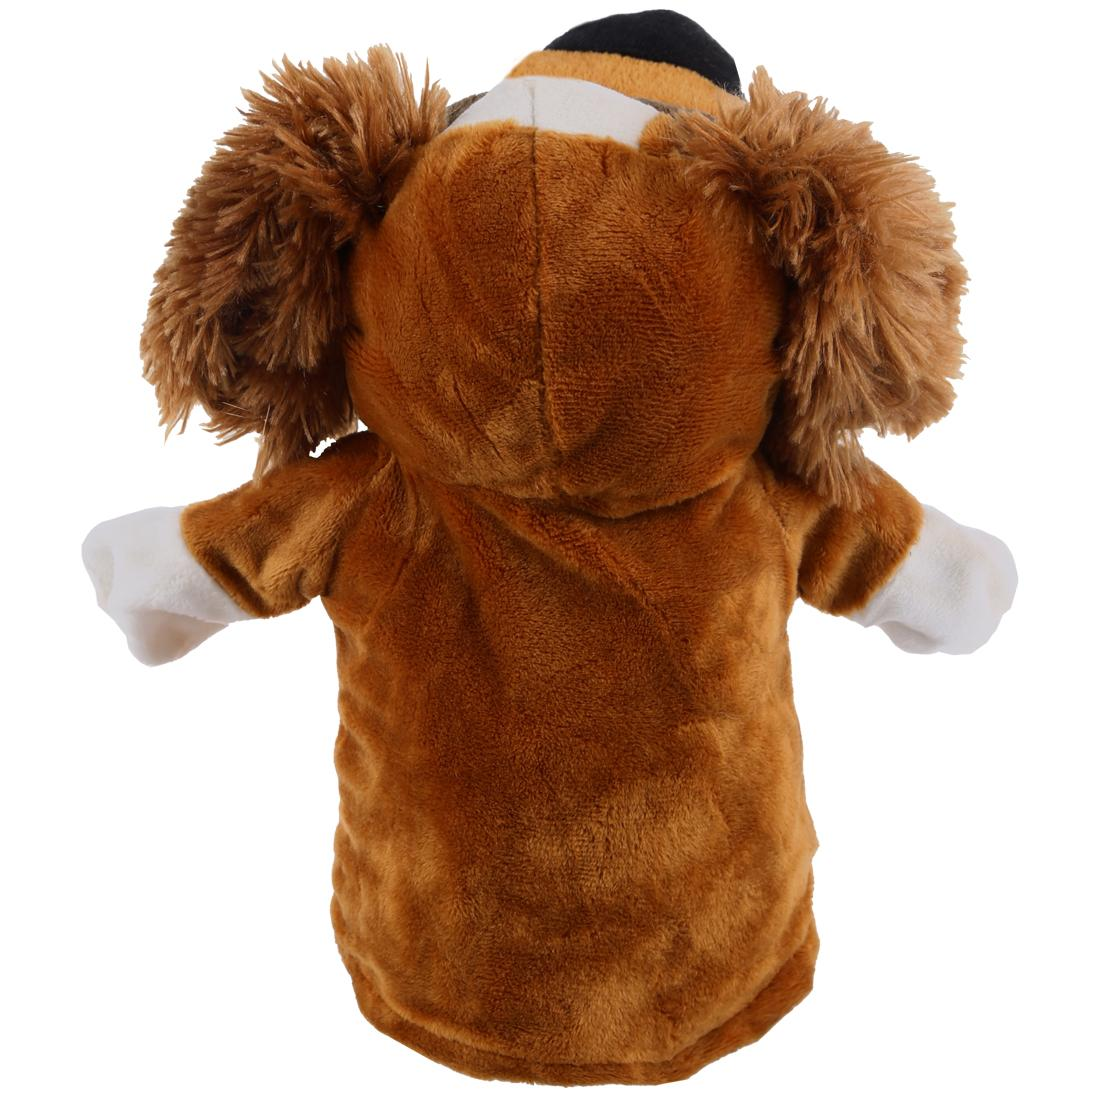 Cute Plush Velour Animals Hand Baby Chic Designs Kid Child Learning Aid Toy Baby Educational Doll Puppets